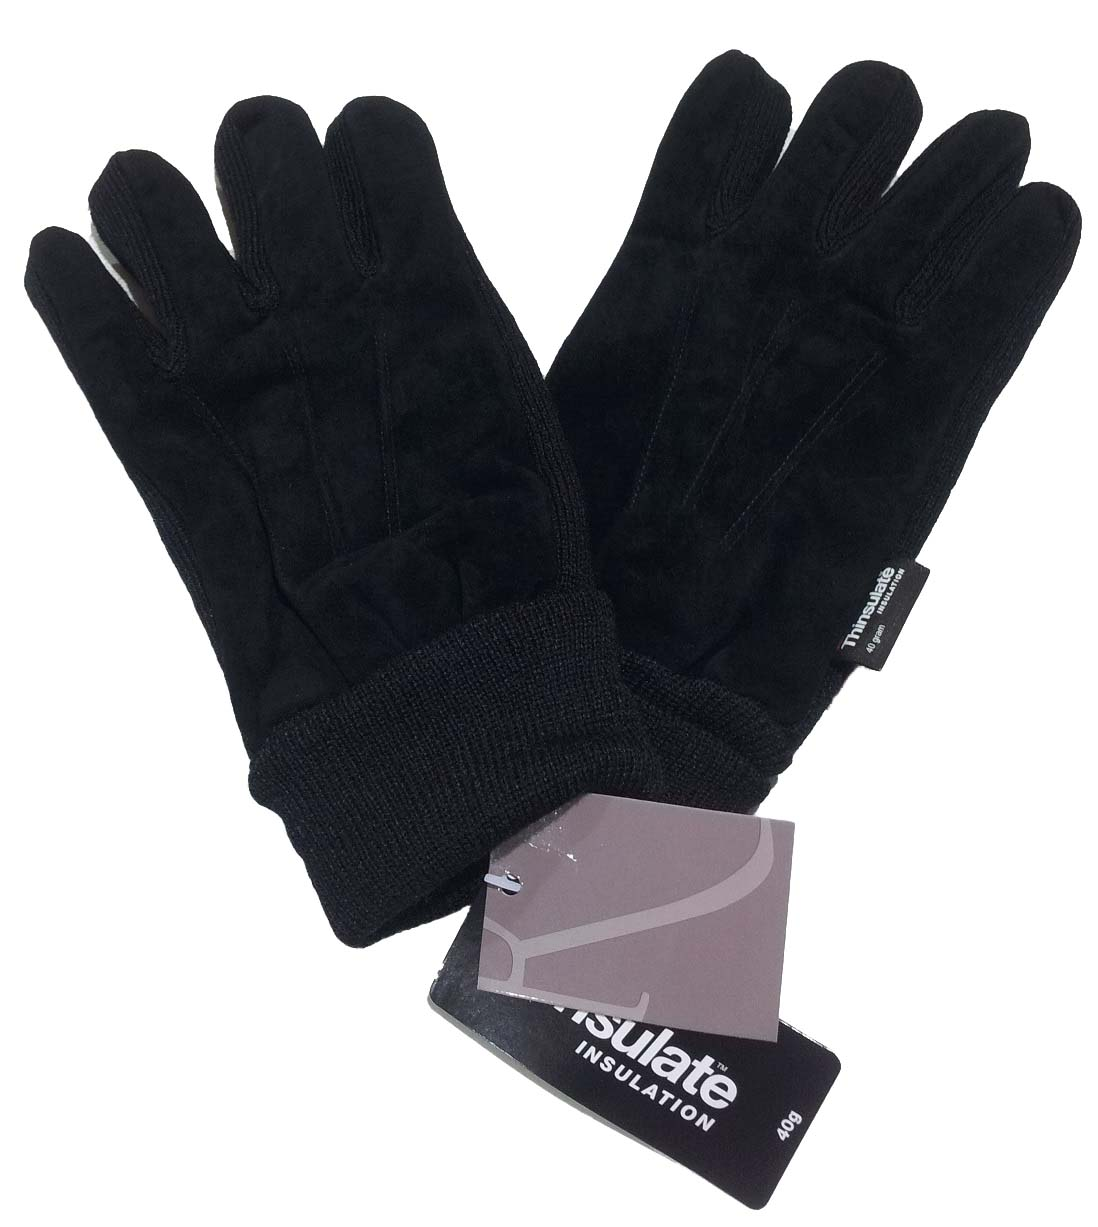 Black or brown leather gloves - Men 039 S Premium Warm Stylish Thinsulate Suede